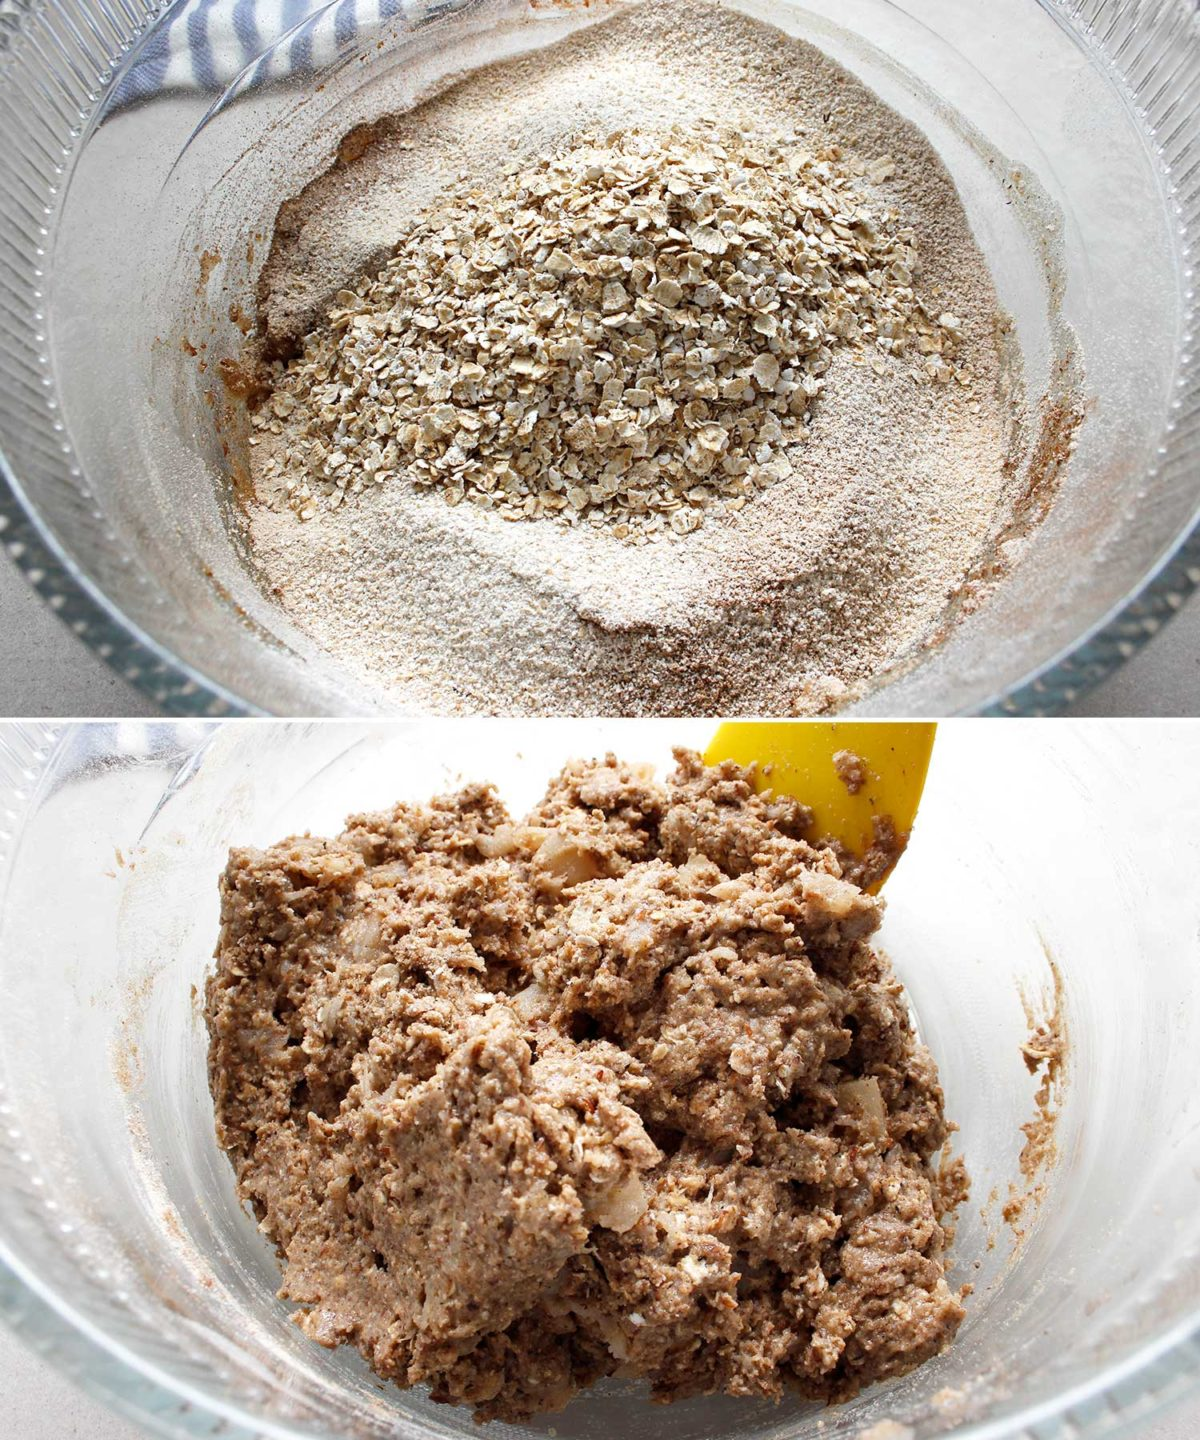 Showing the texture of the apple crisp bread dough mixture after it's been mixed.